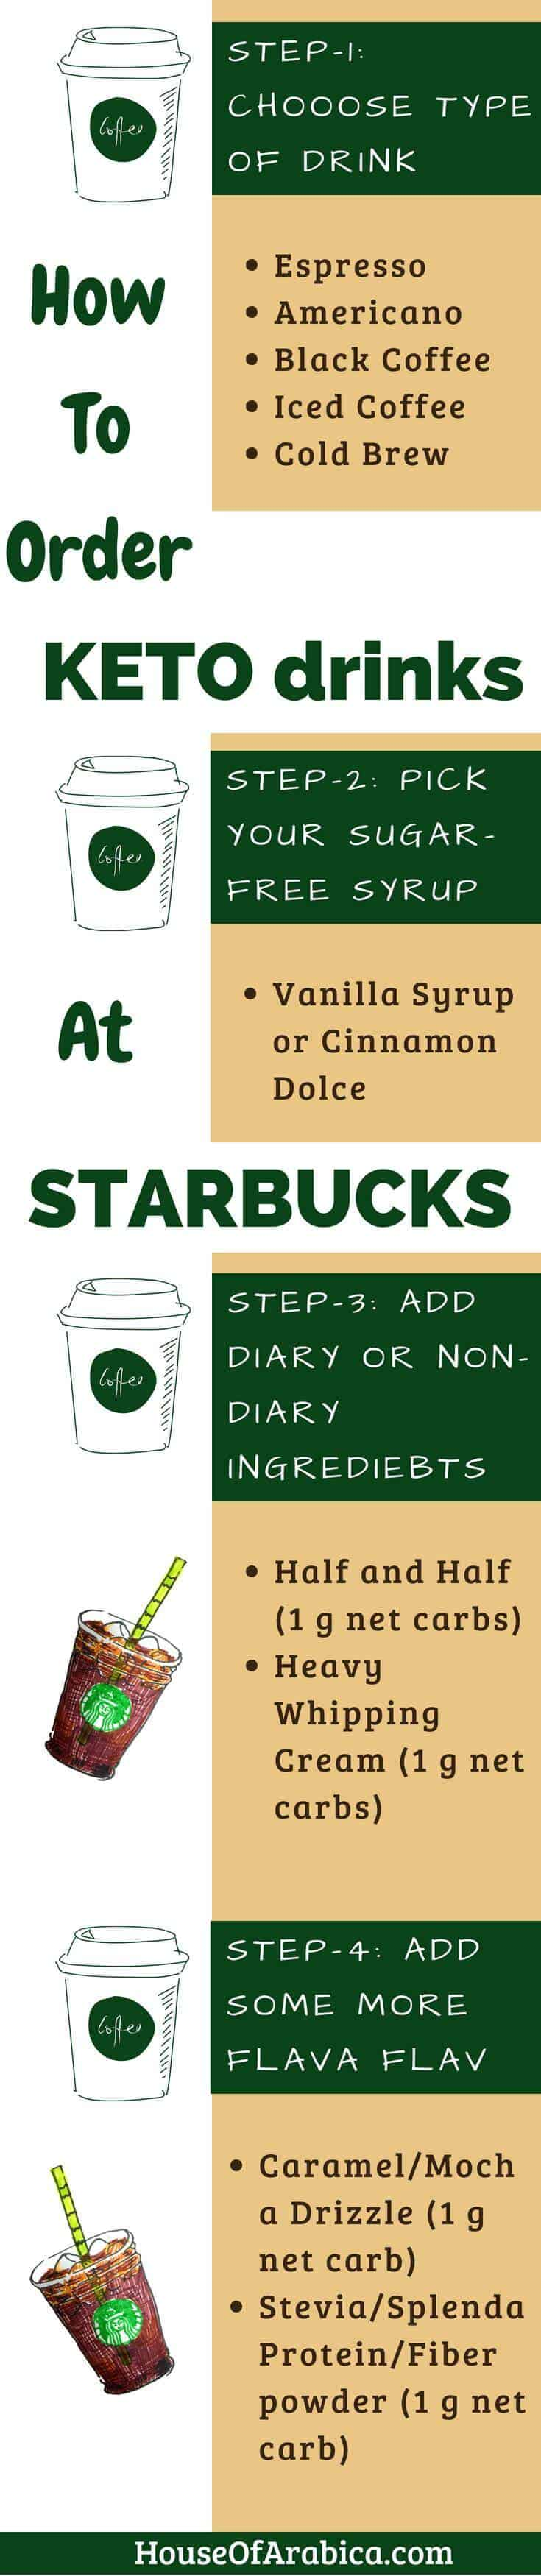 How to Order Keto Drinks at Starbucks